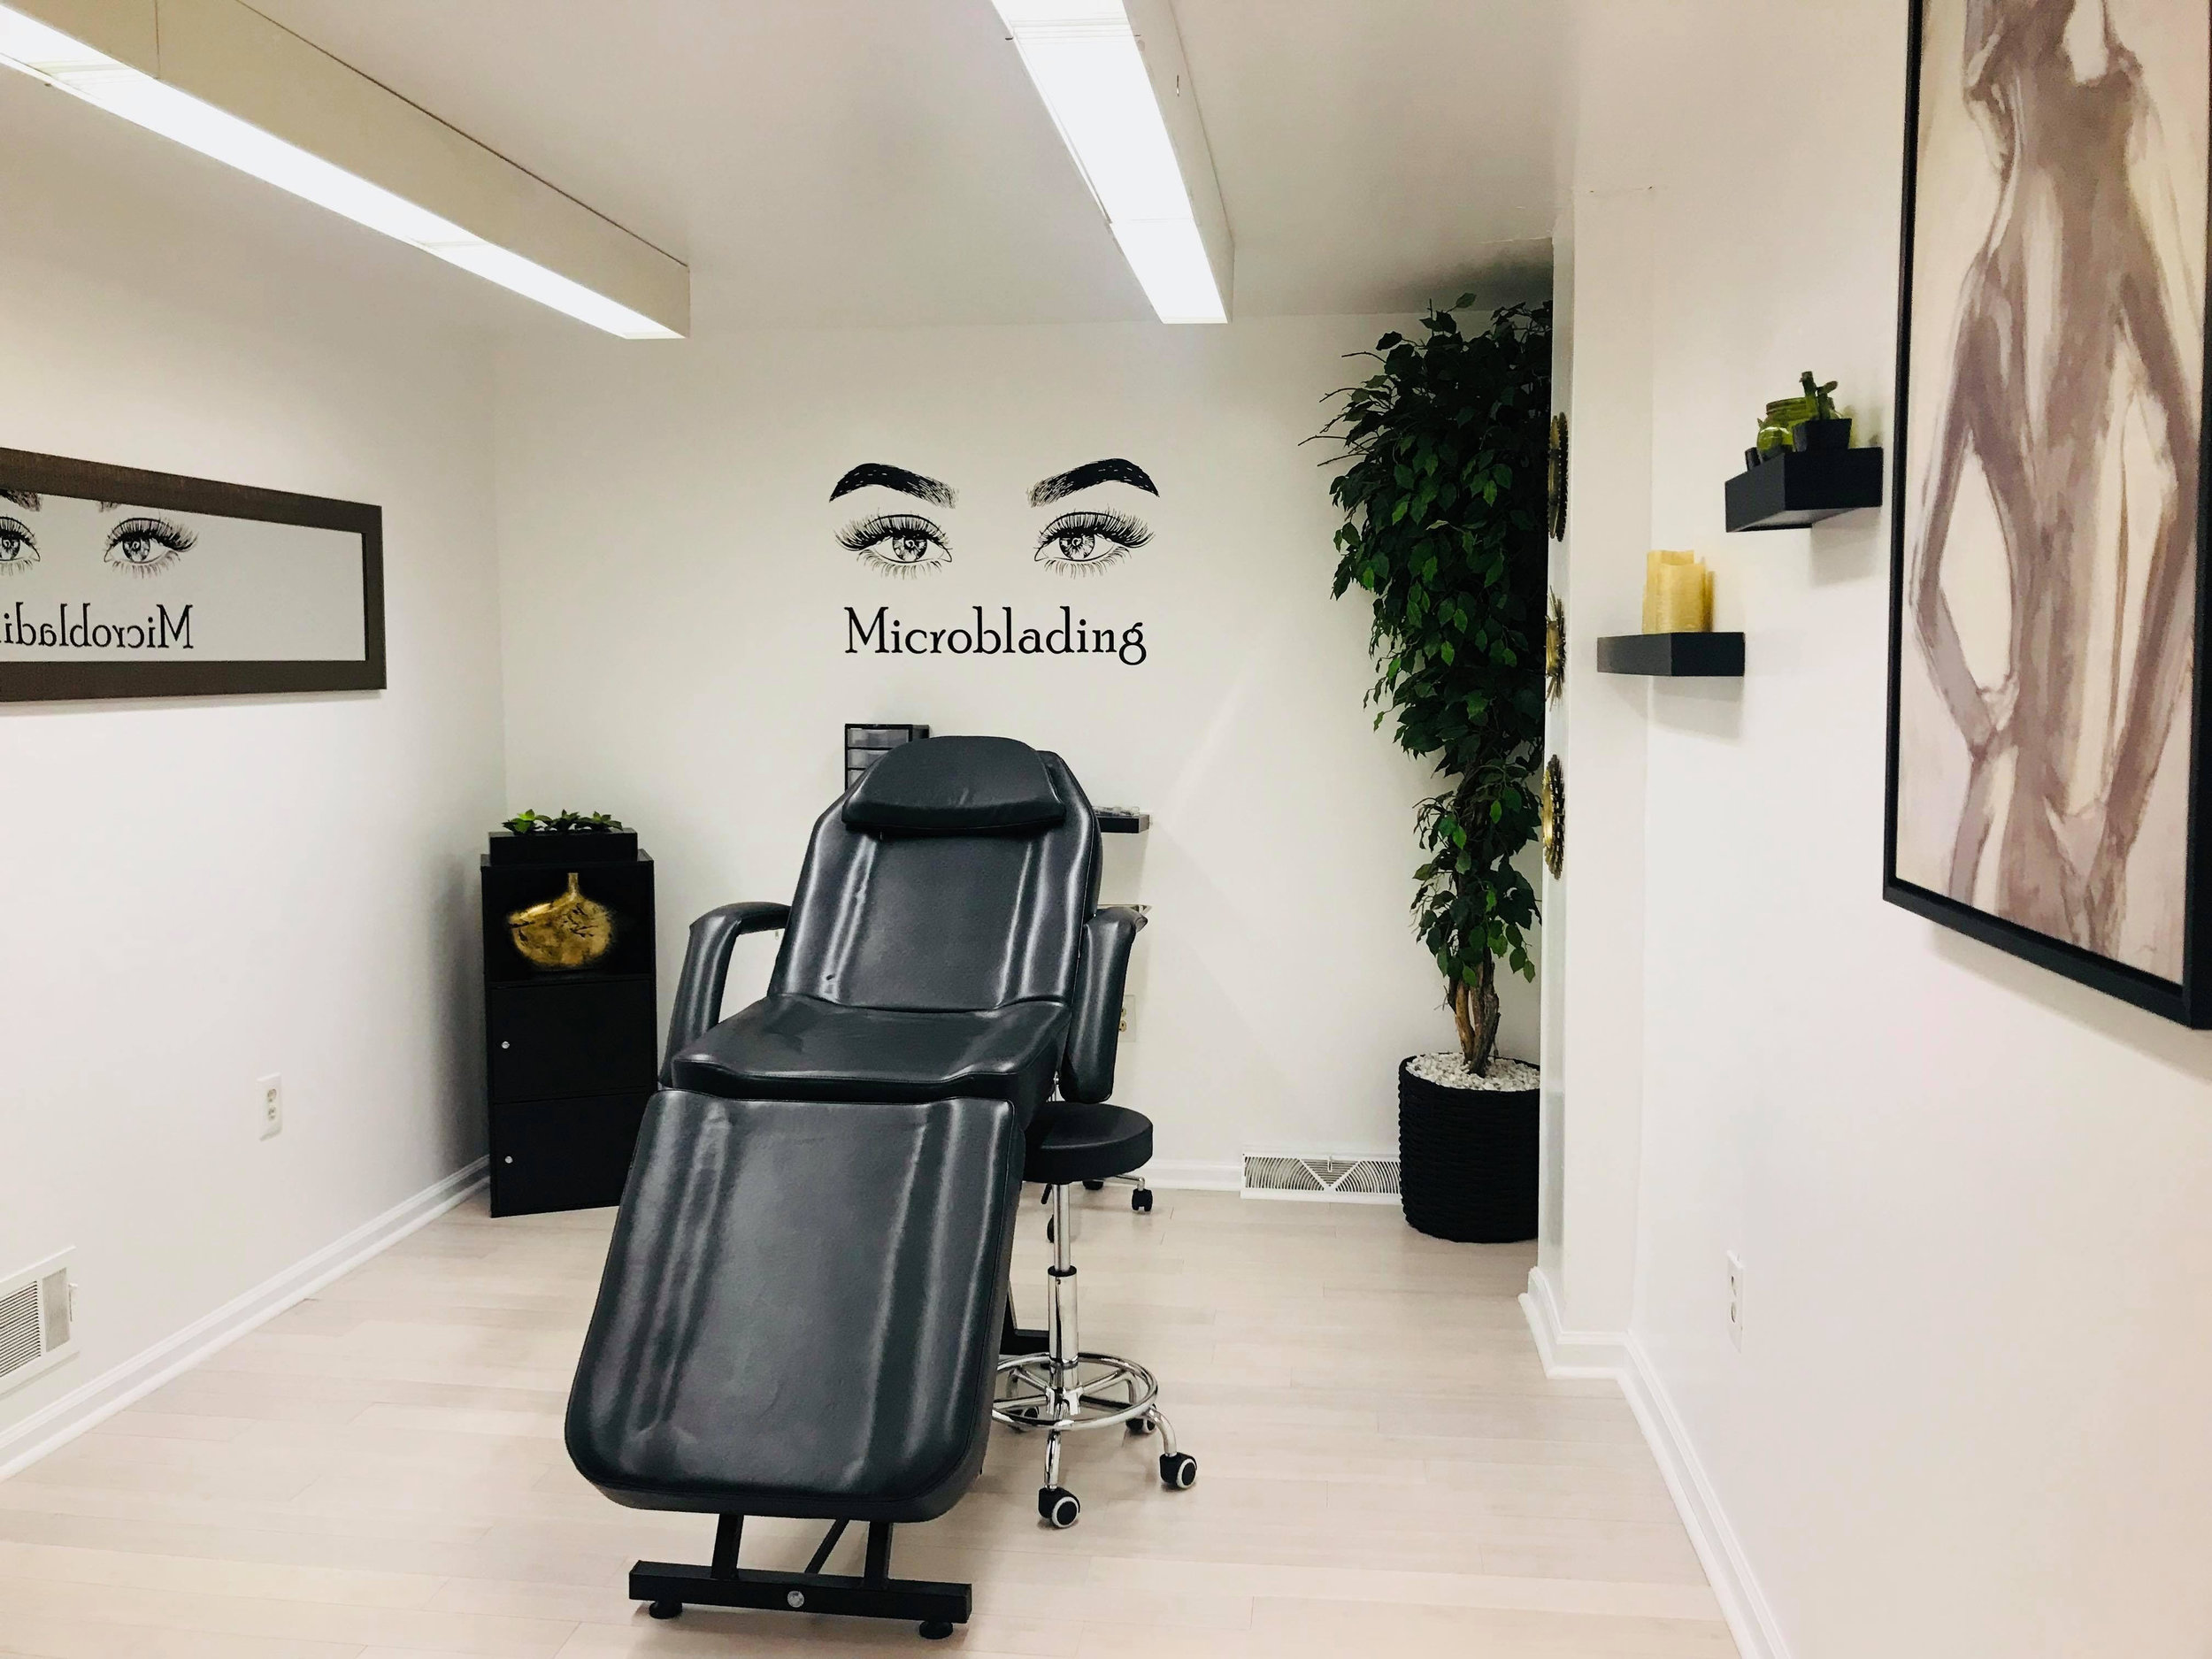 Chair for Microblading